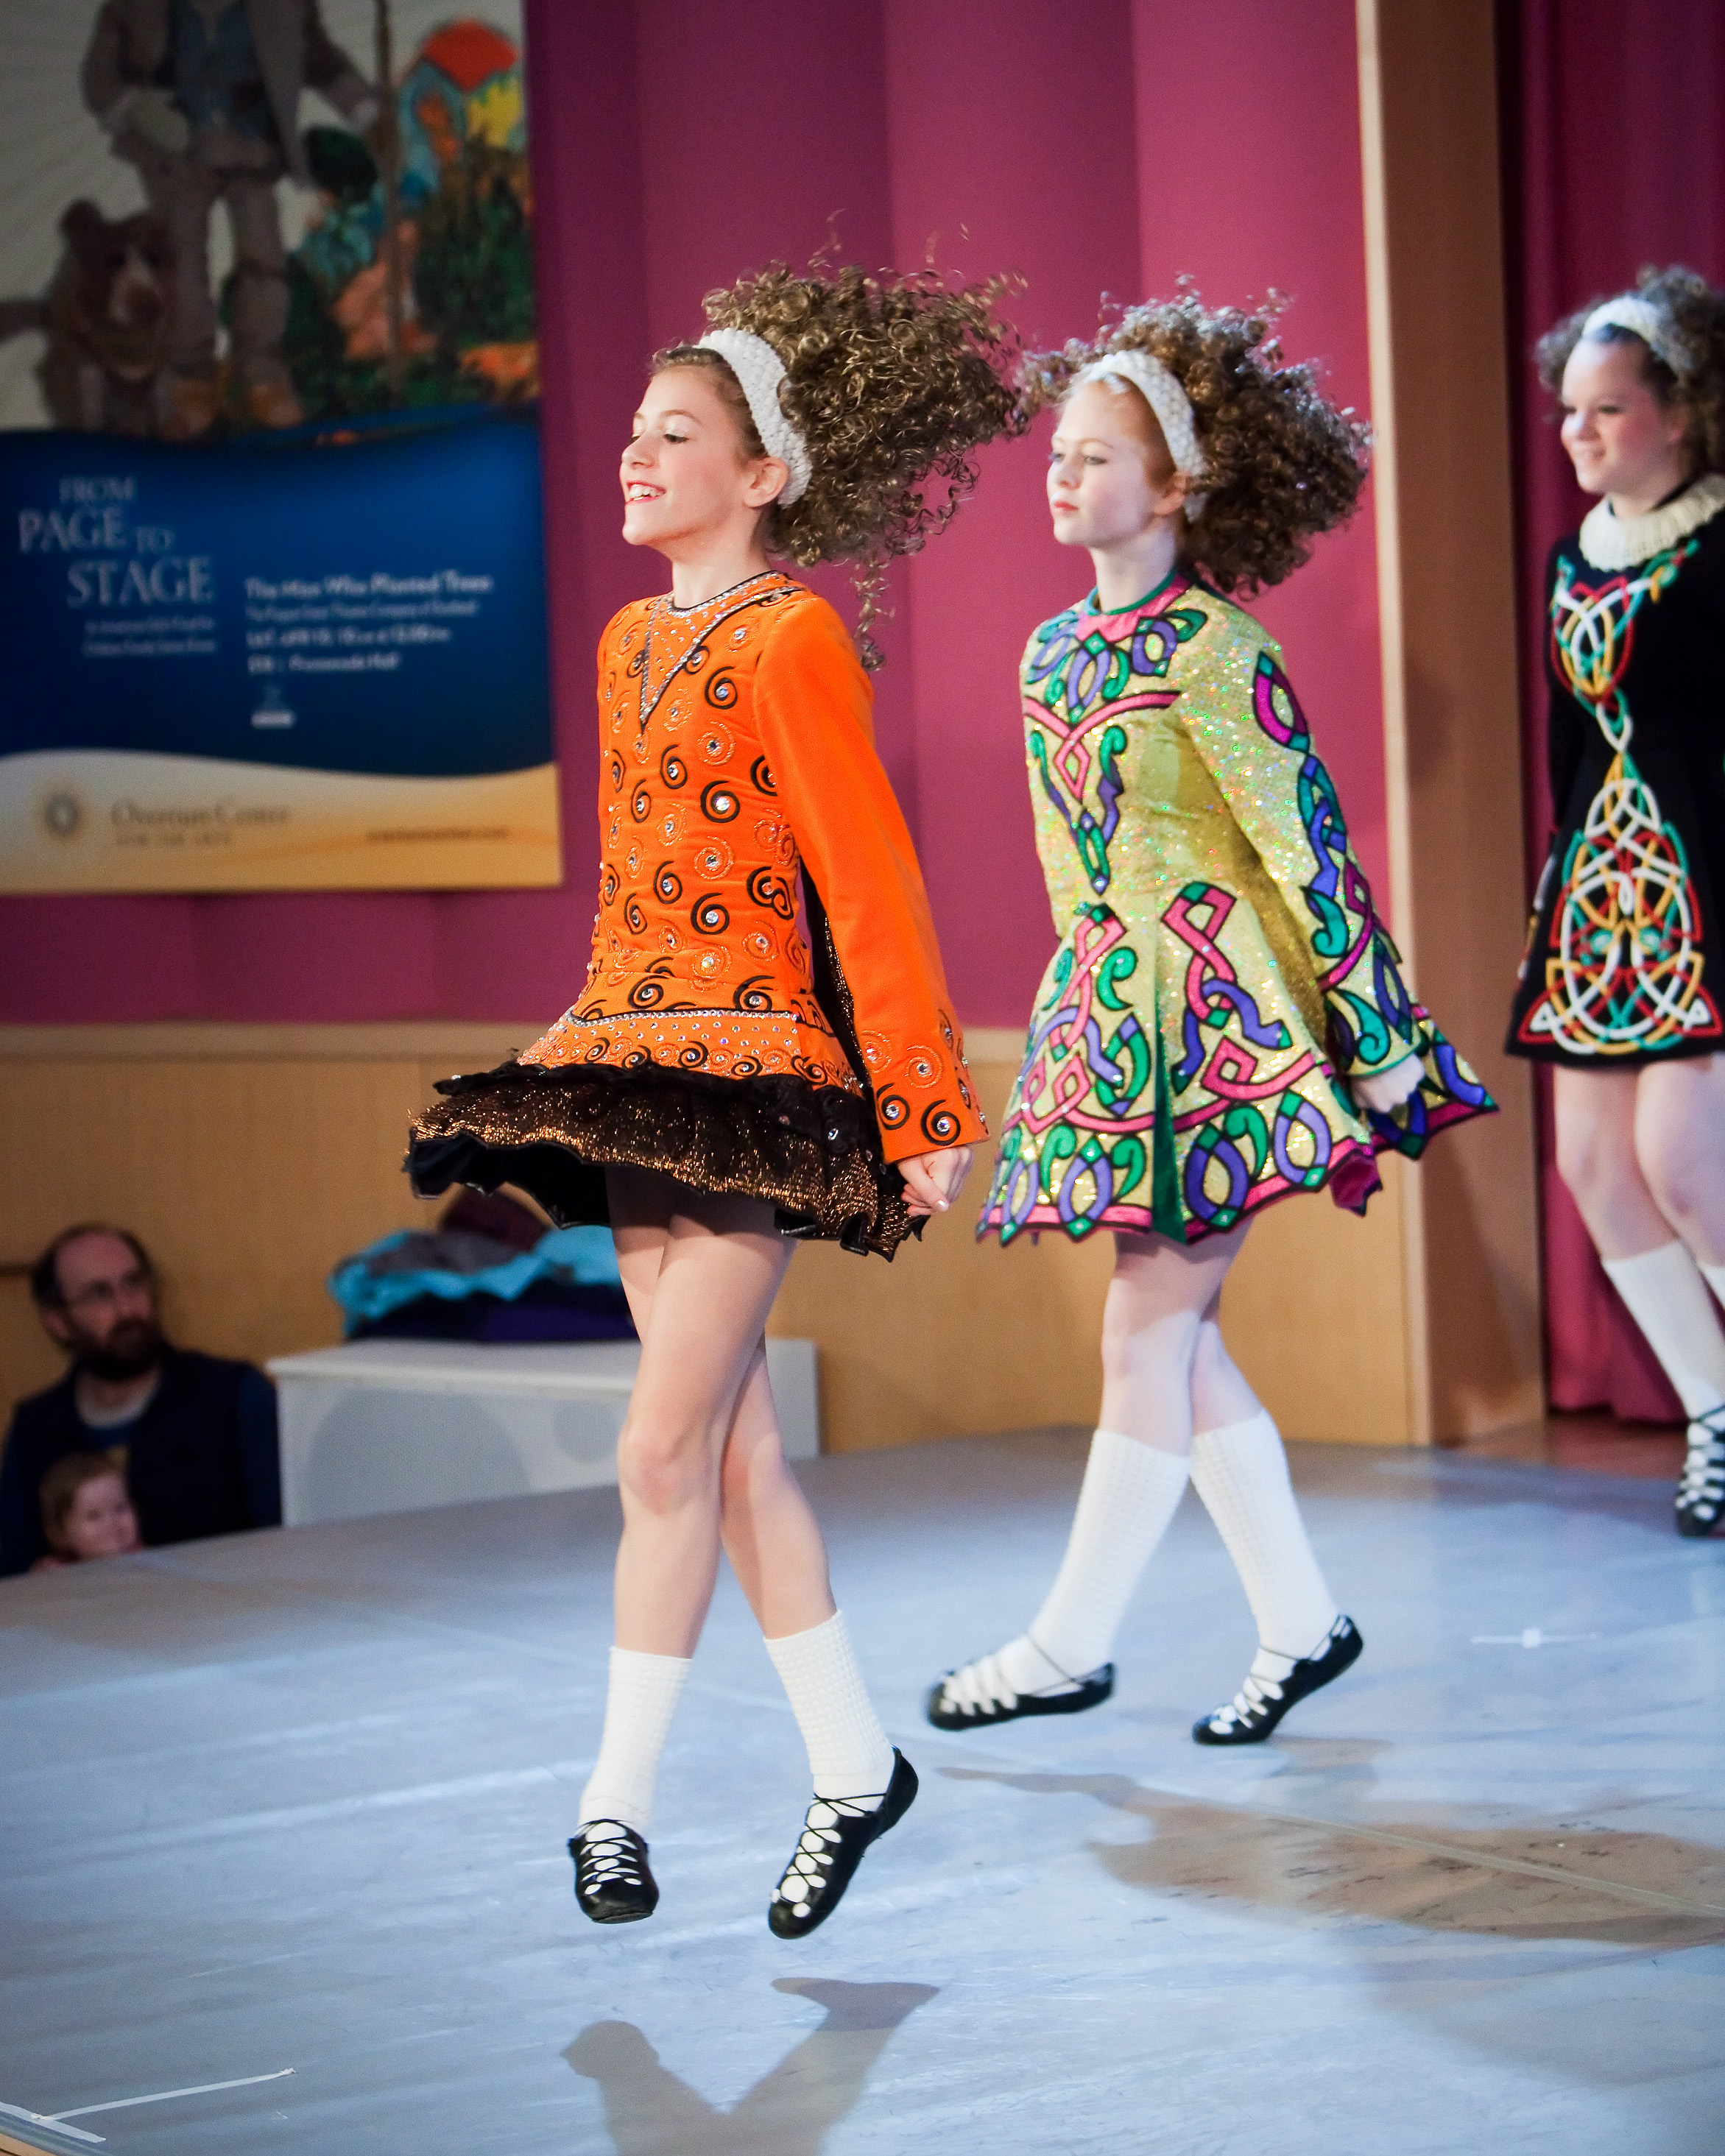 Modern Irish dance: description, history and movements